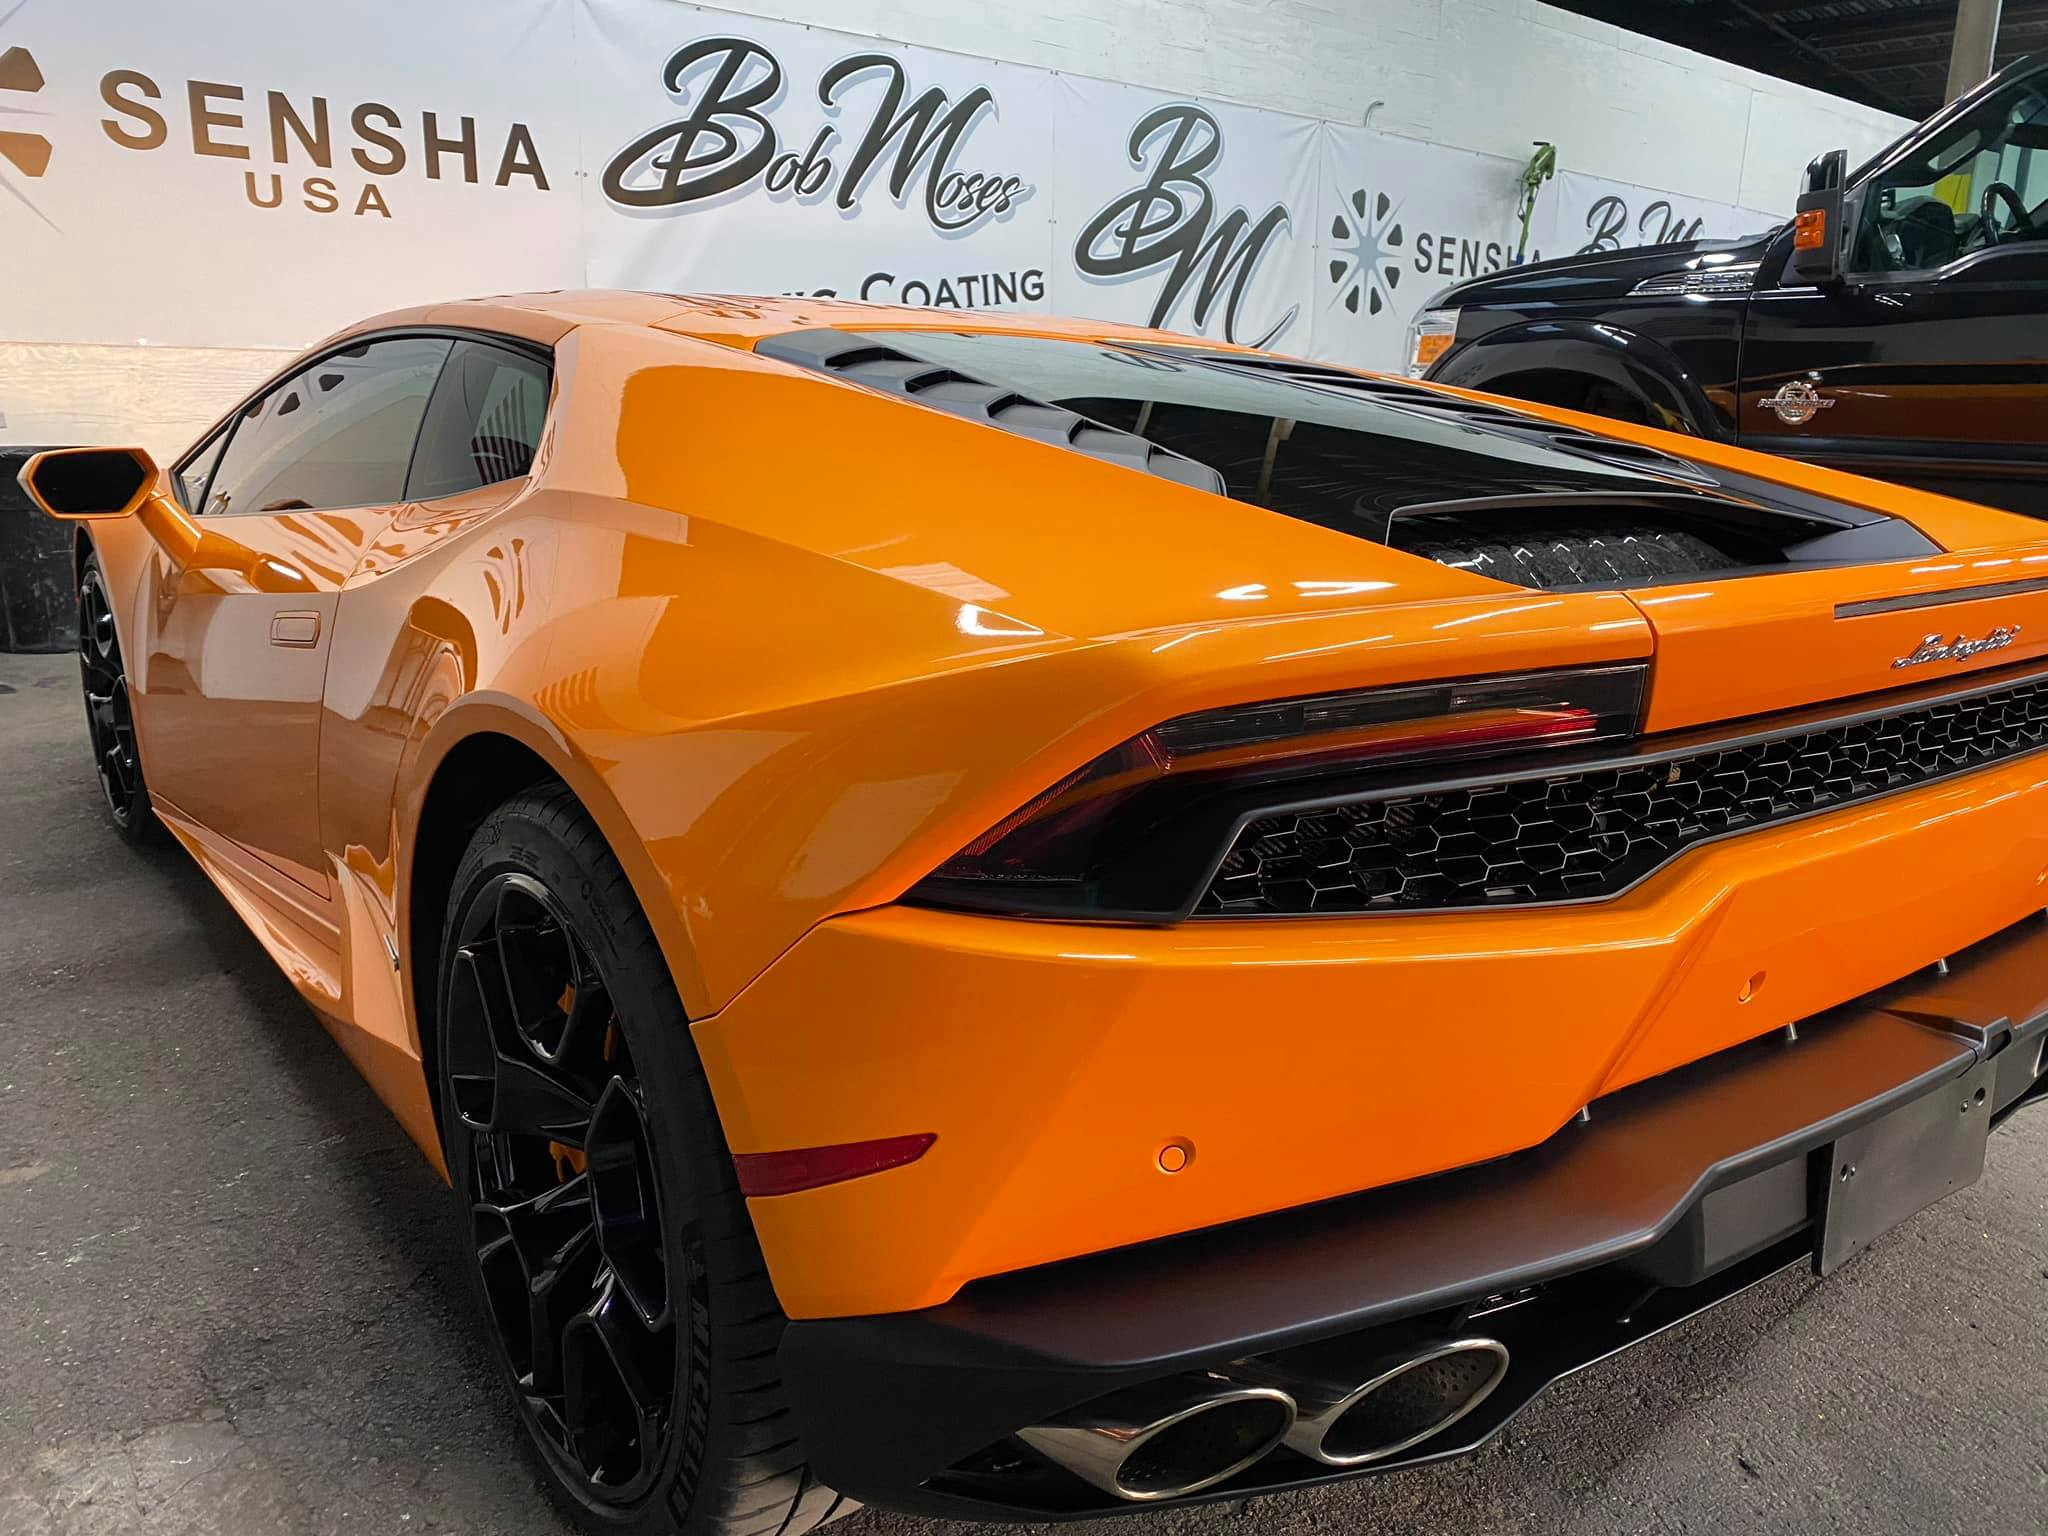 Bob Moses Ceramic Coating_car_Lamborghini_Phoenix